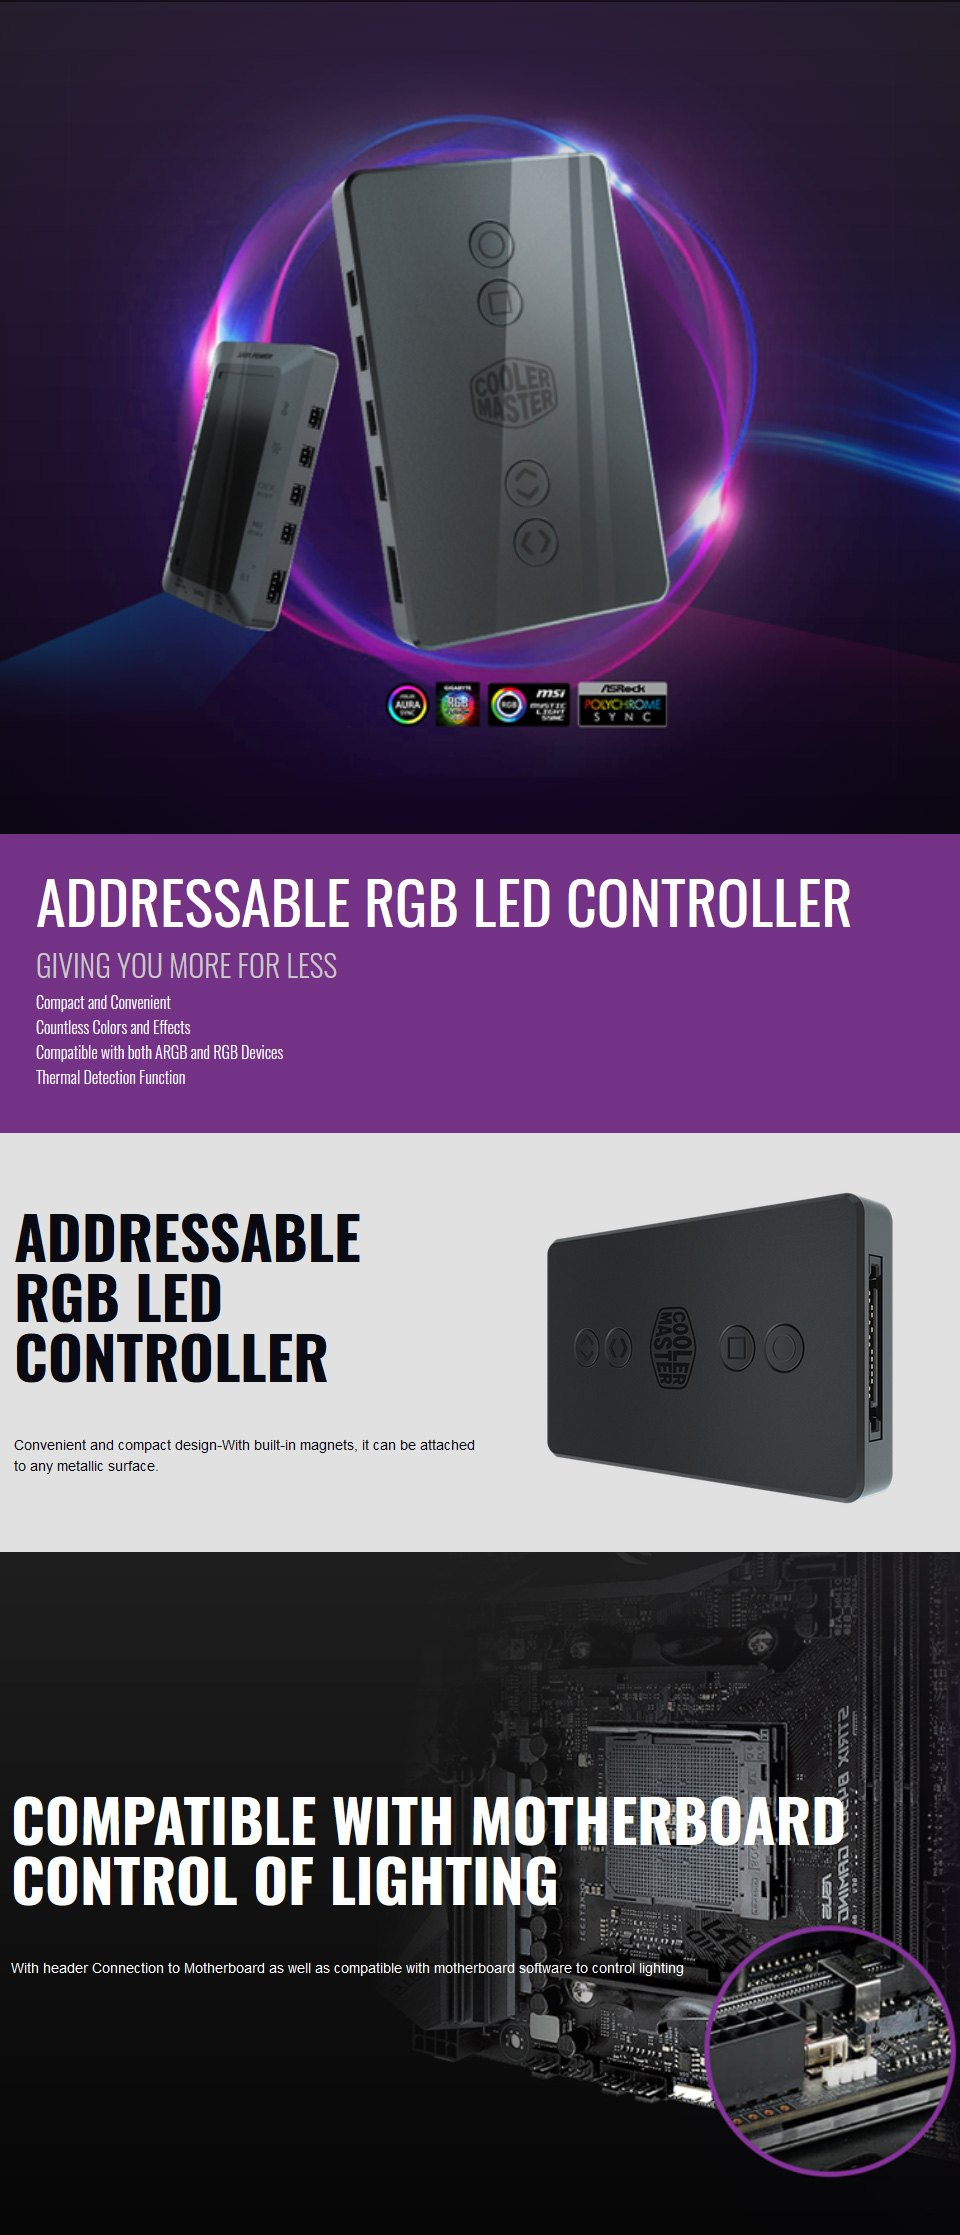 Cooler Master A-RGB LED Controller features